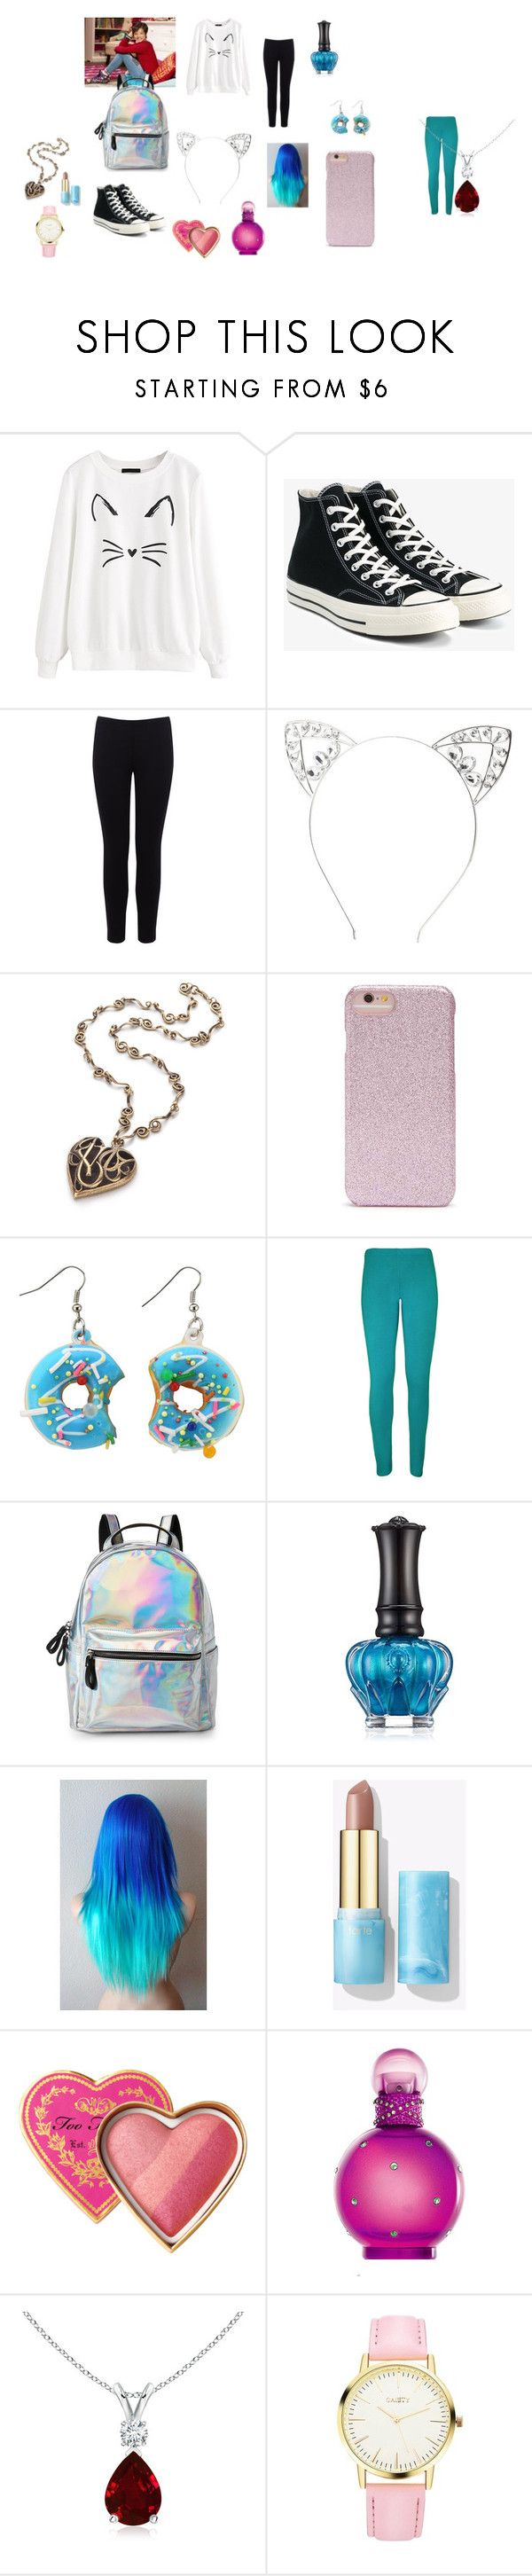 """disi"" by queen-olmos on Polyvore featuring Converse, Warehouse, Charlotte Russe, Forever 21, WearAll, IMoshion, Anna Sui, Too Faced Cosmetics, Britney Spears e men's fashion"